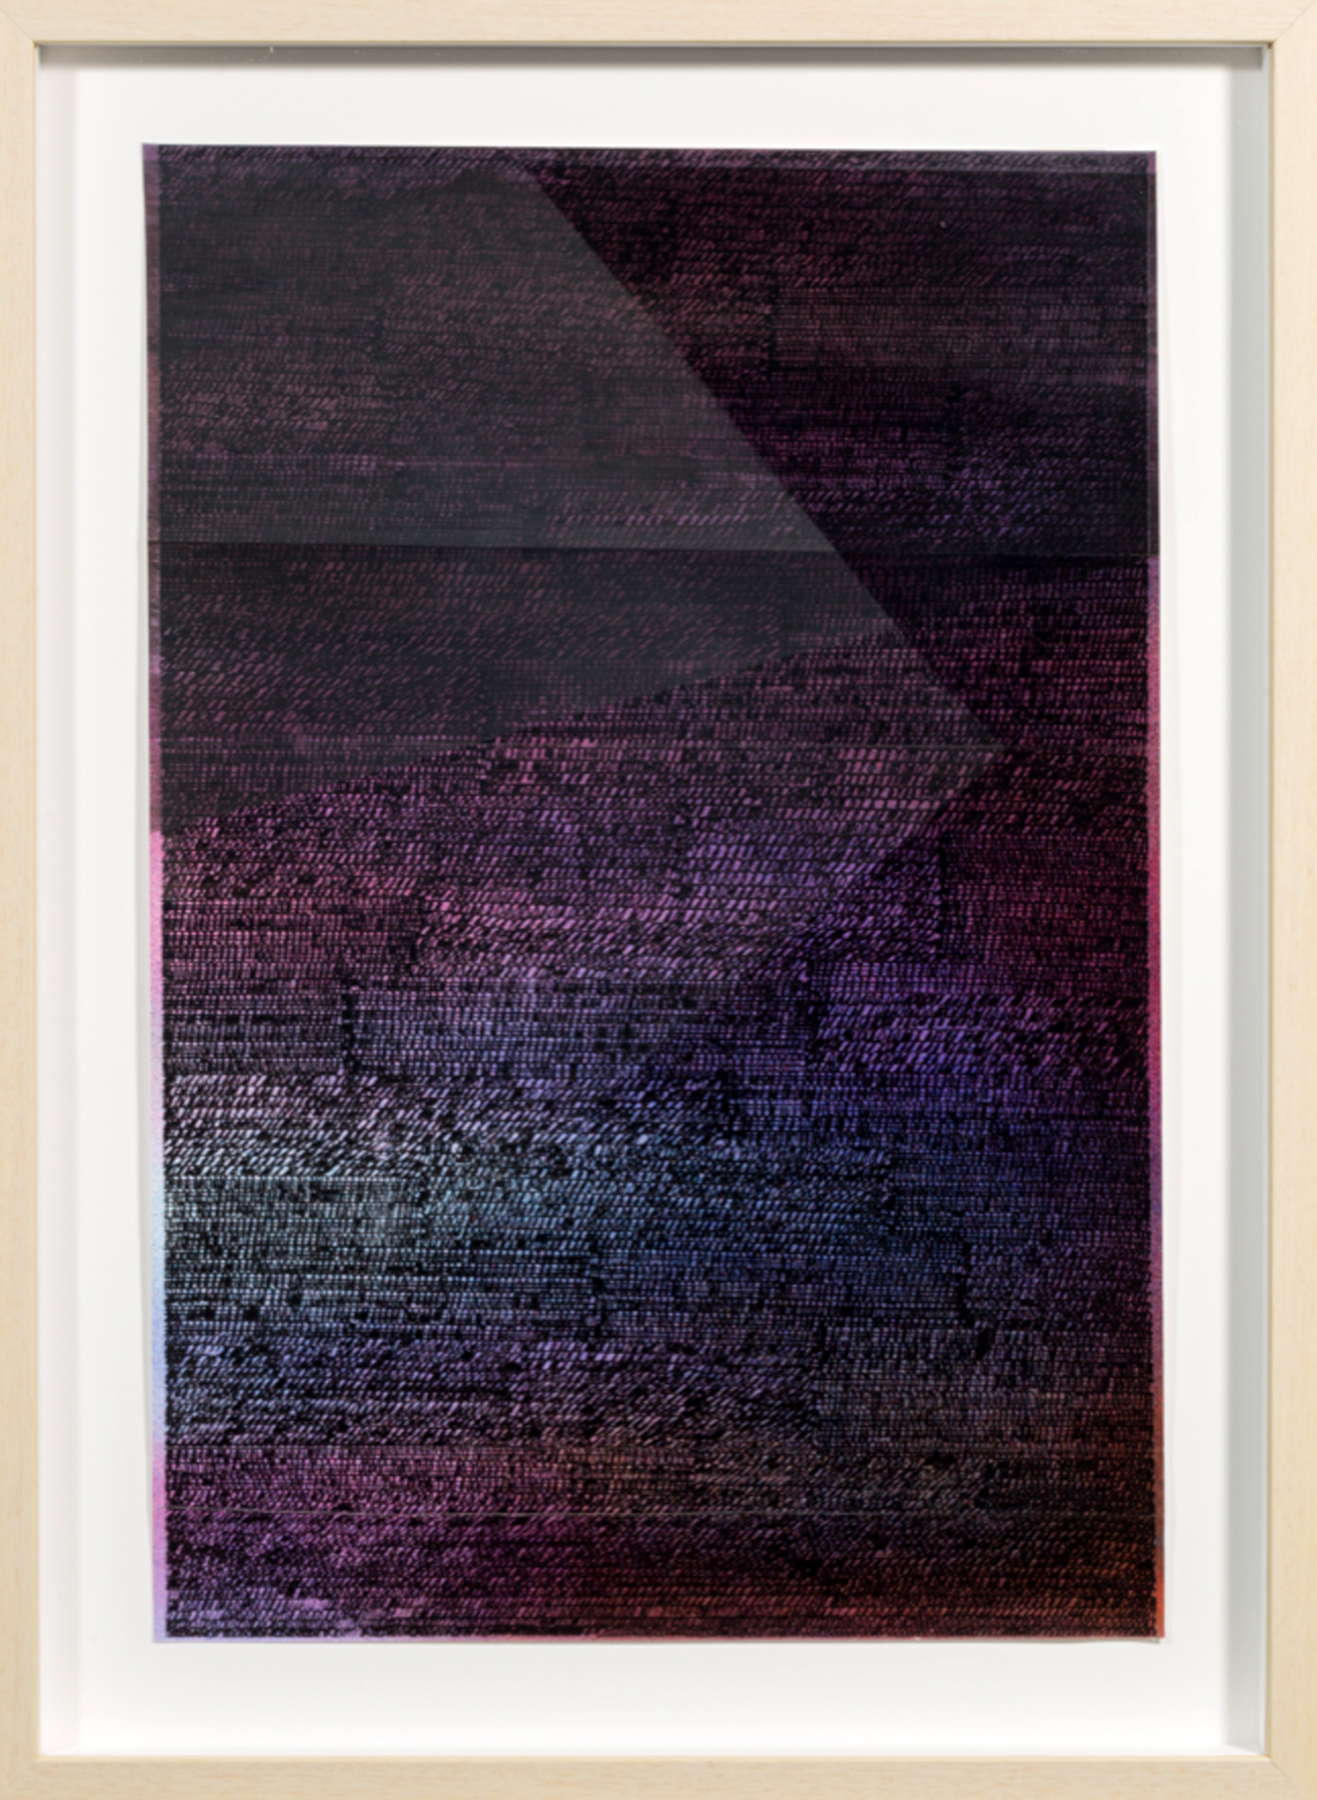 LINDSEY LANDFRIED | Ecstatic Dark, 21.5 x 14.75 inches / 54.5 x 37.5 cm, acrylic on folded paper, 2018